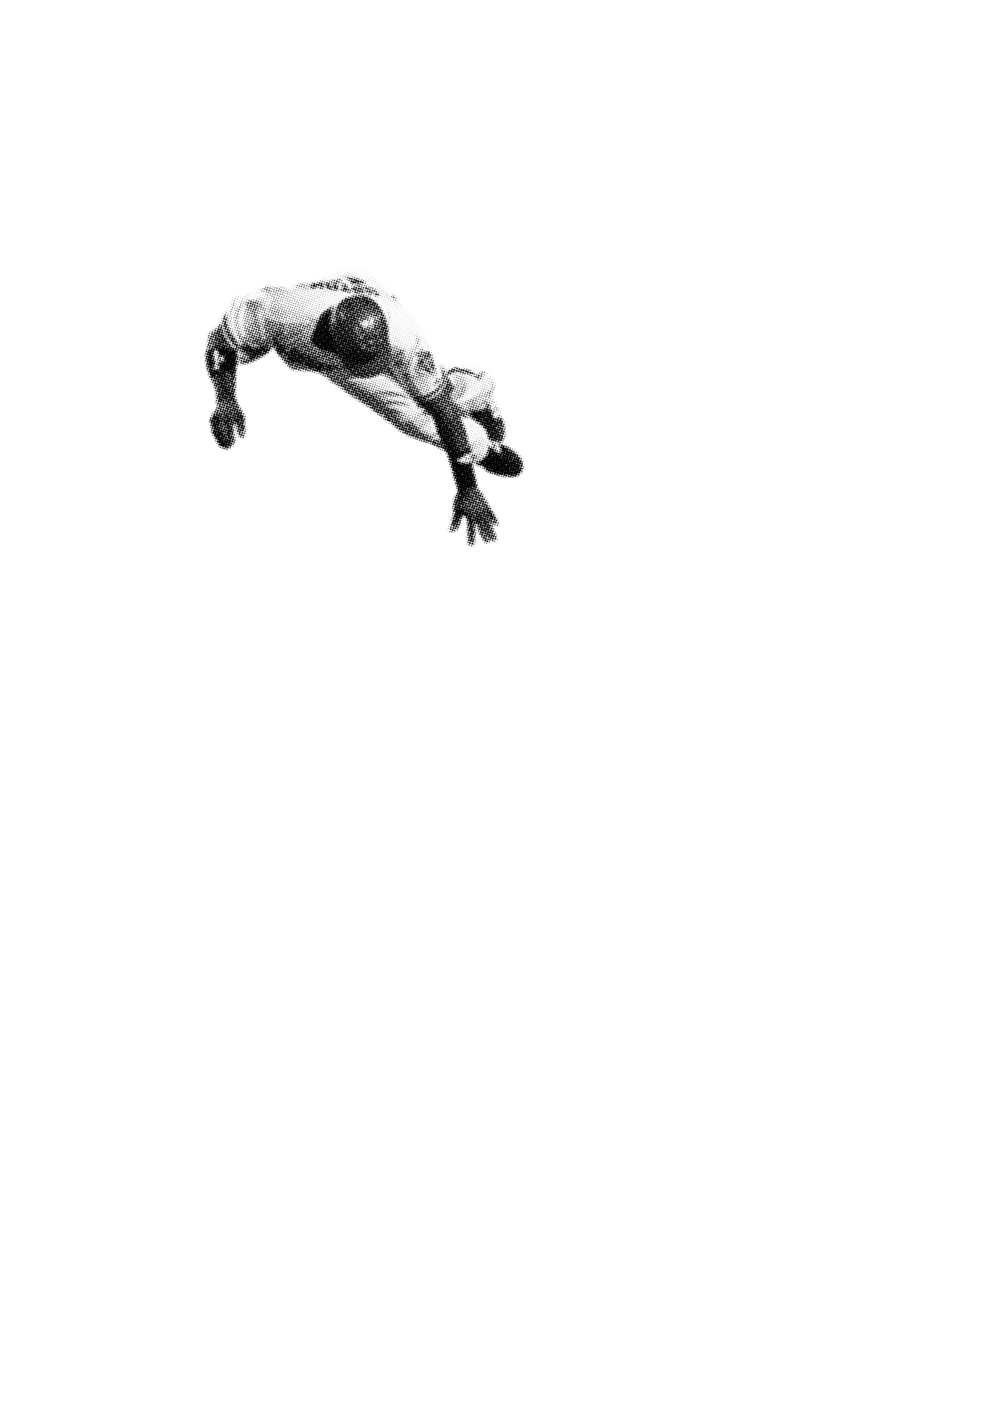 Liber-May__sliding-into-home__2009__01.png